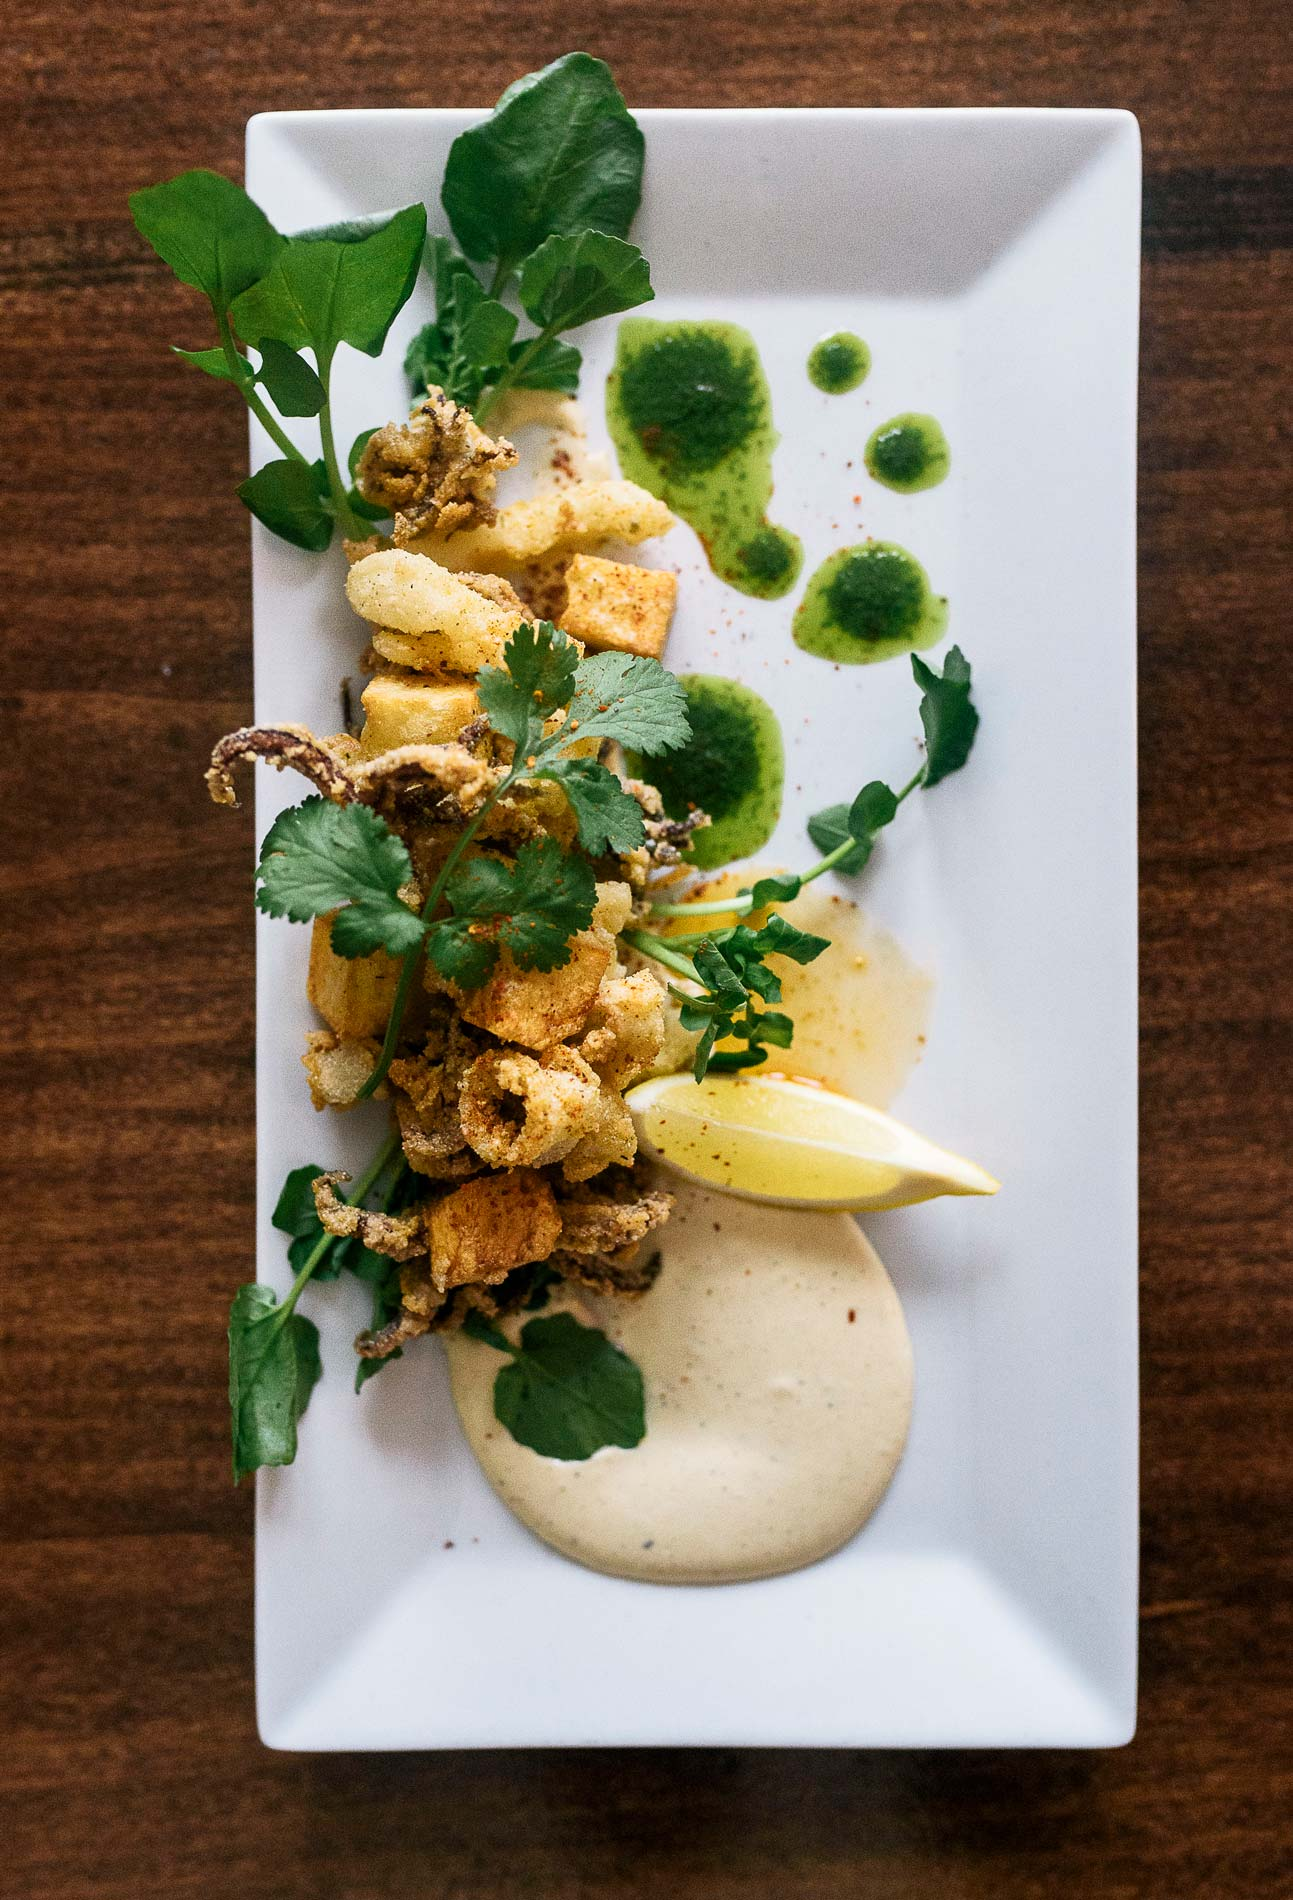 Fried Pickled Tripe and Calamari, served with papas bravas -